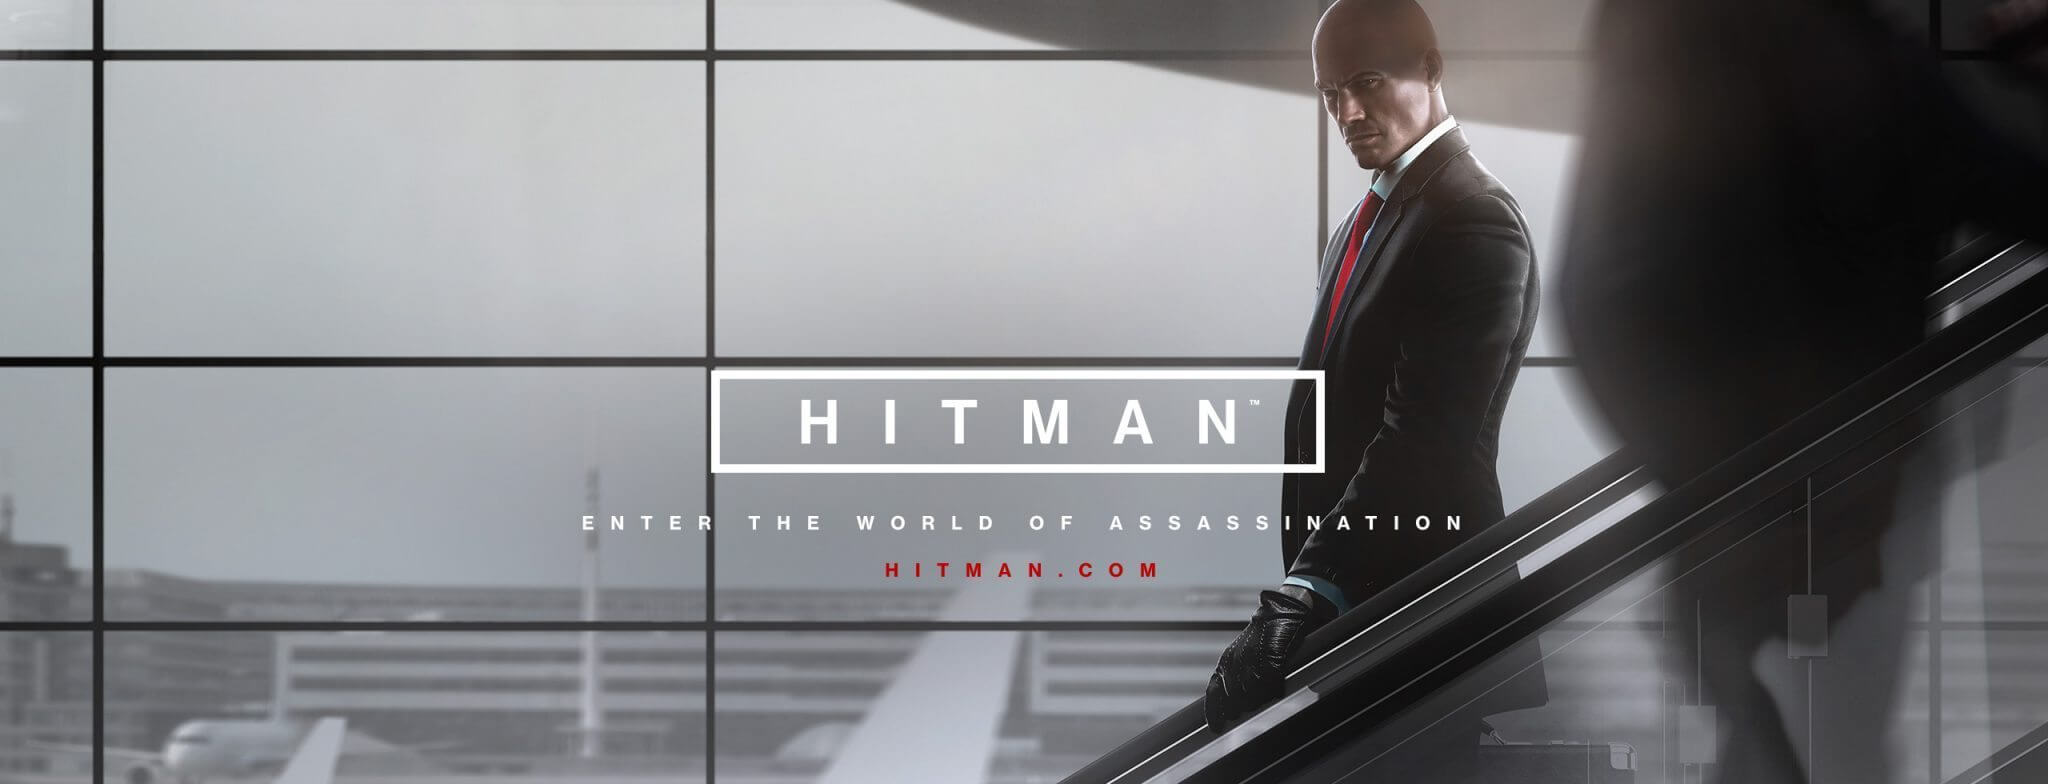 Hitman marquee 1